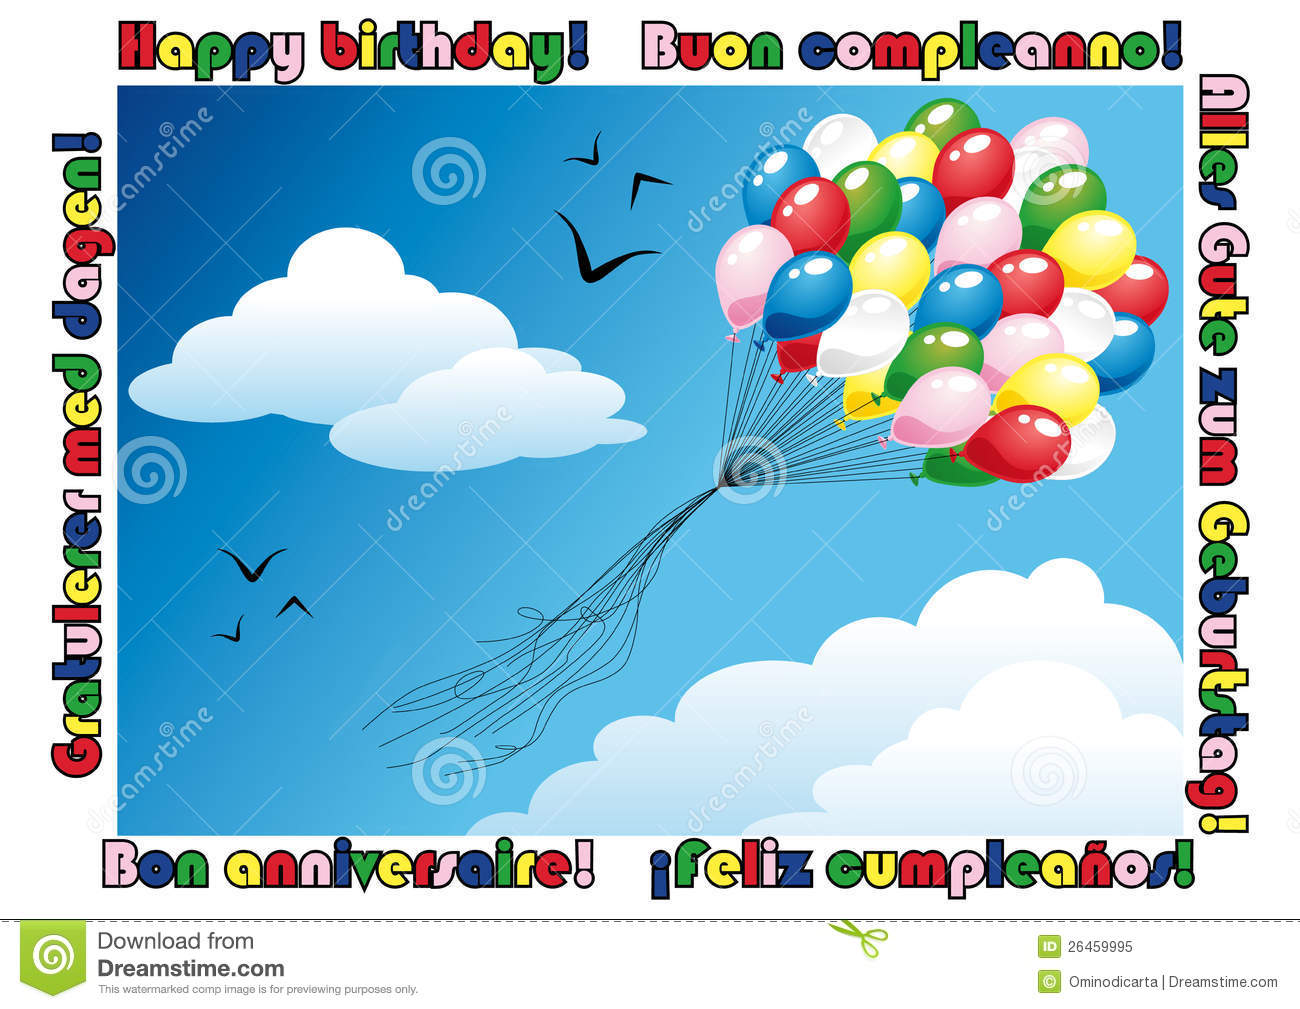 Happy Birthday Card With A Bunch Of Balloons Flying In The Blue Sky Text English Italian German Spanish French Norwegian